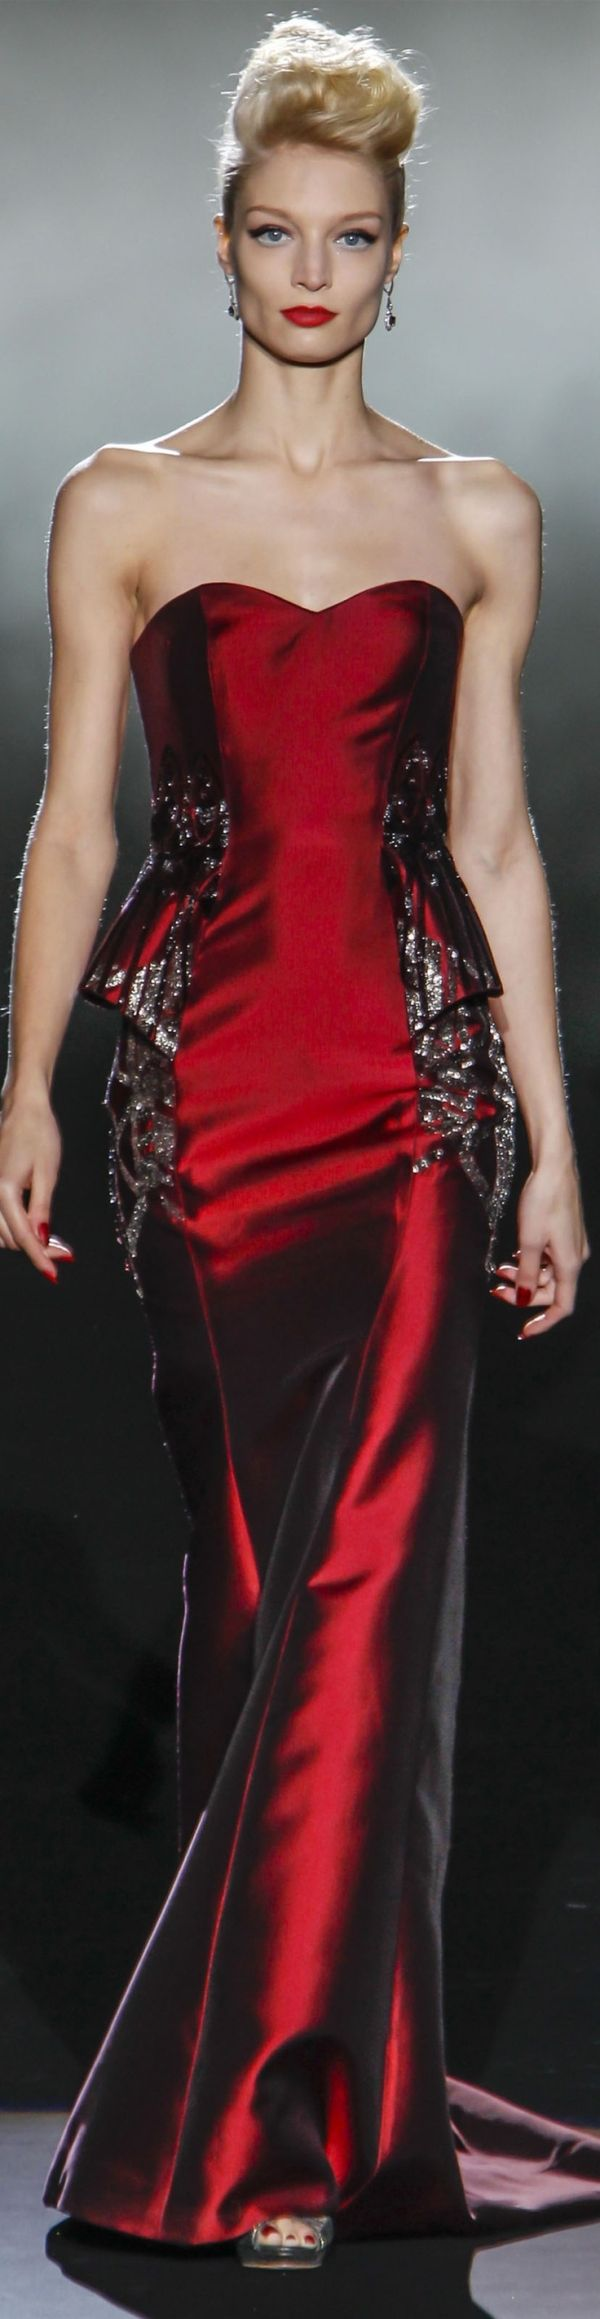 Badgley Mischka Collections Fall Winter 2013-14 collection by Stacie09